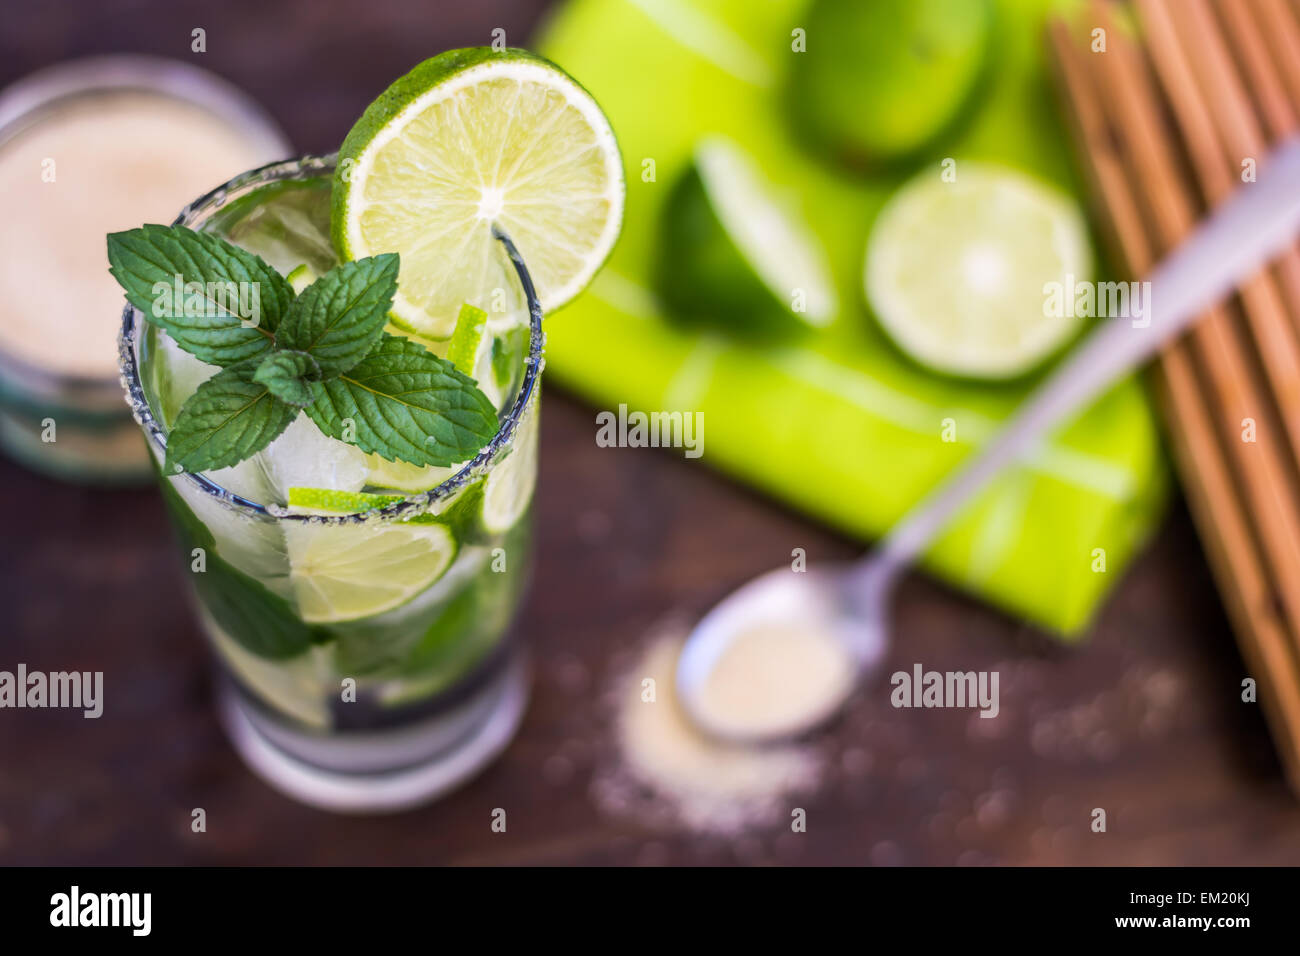 Mojito Lime Alcoholic Drink Cocktail on Wooden Table Stock Photo